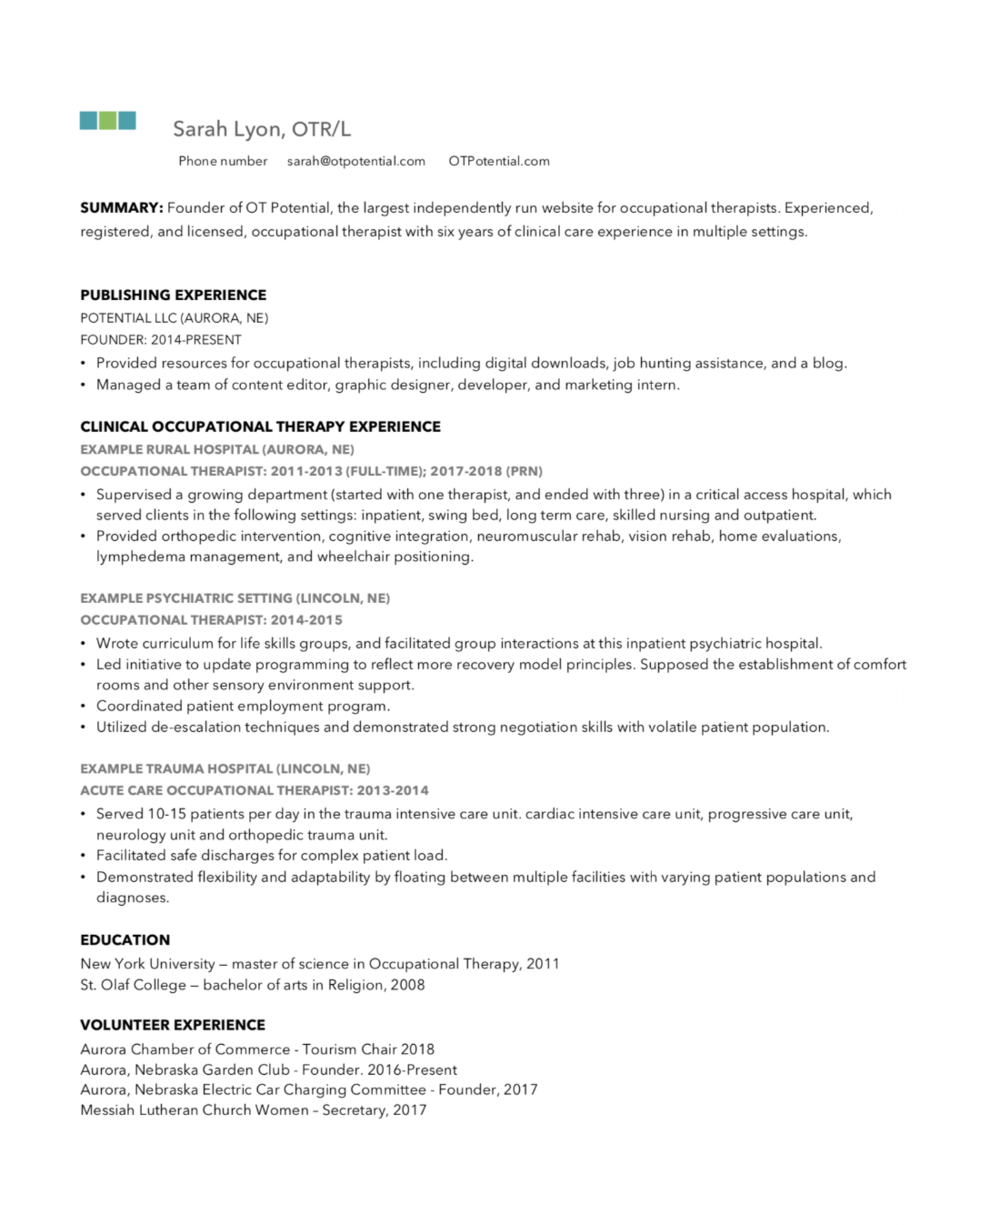 Here is an example of one of my own OT resume last updated in 2018. You will see that I changed some of the information for privacy, but hopefully you can use it as a starting point in your own resume creation.